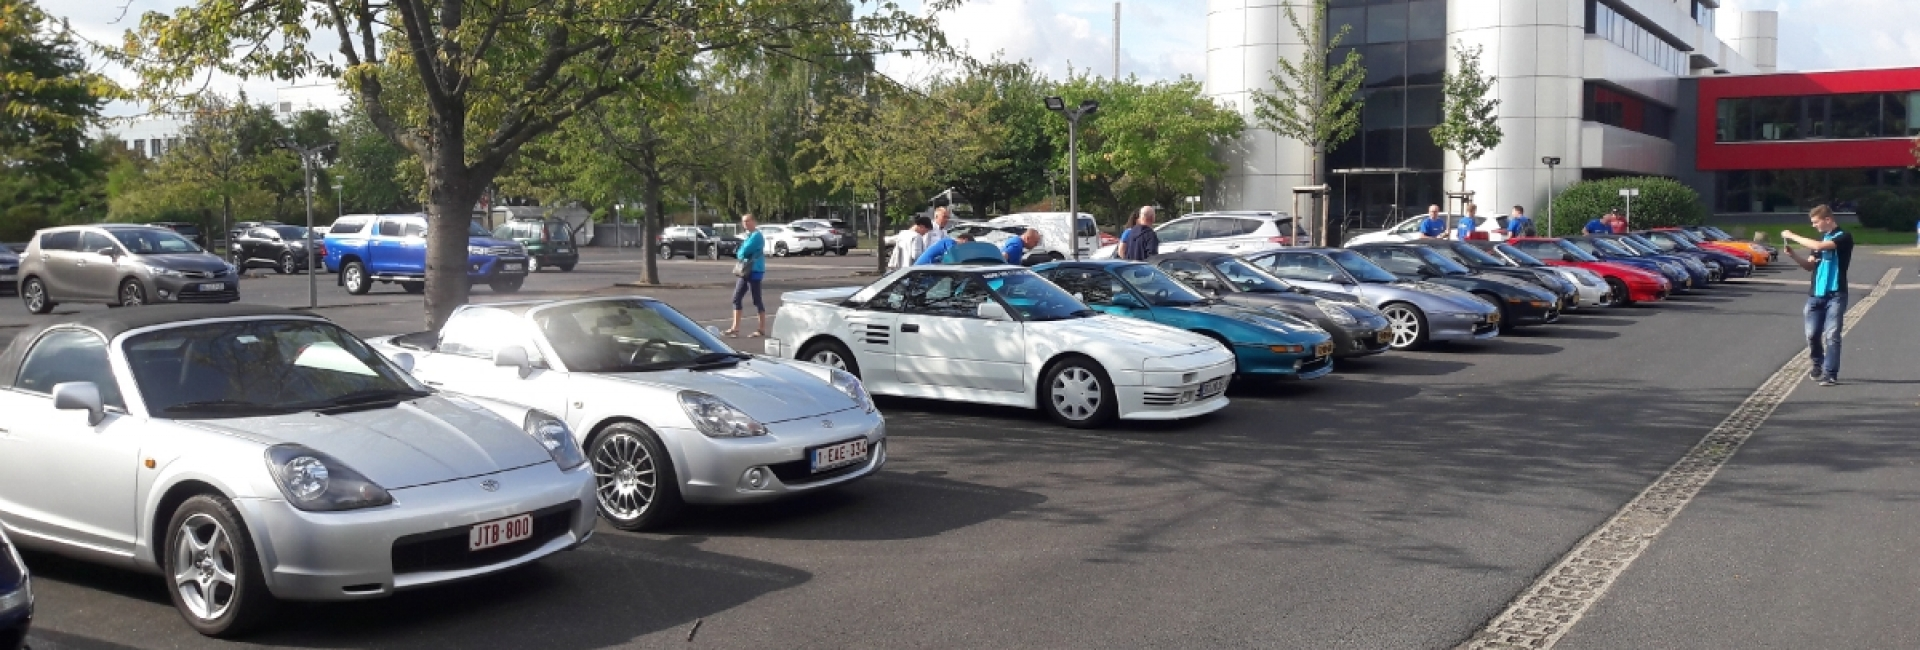 MR2 EURO MEETING